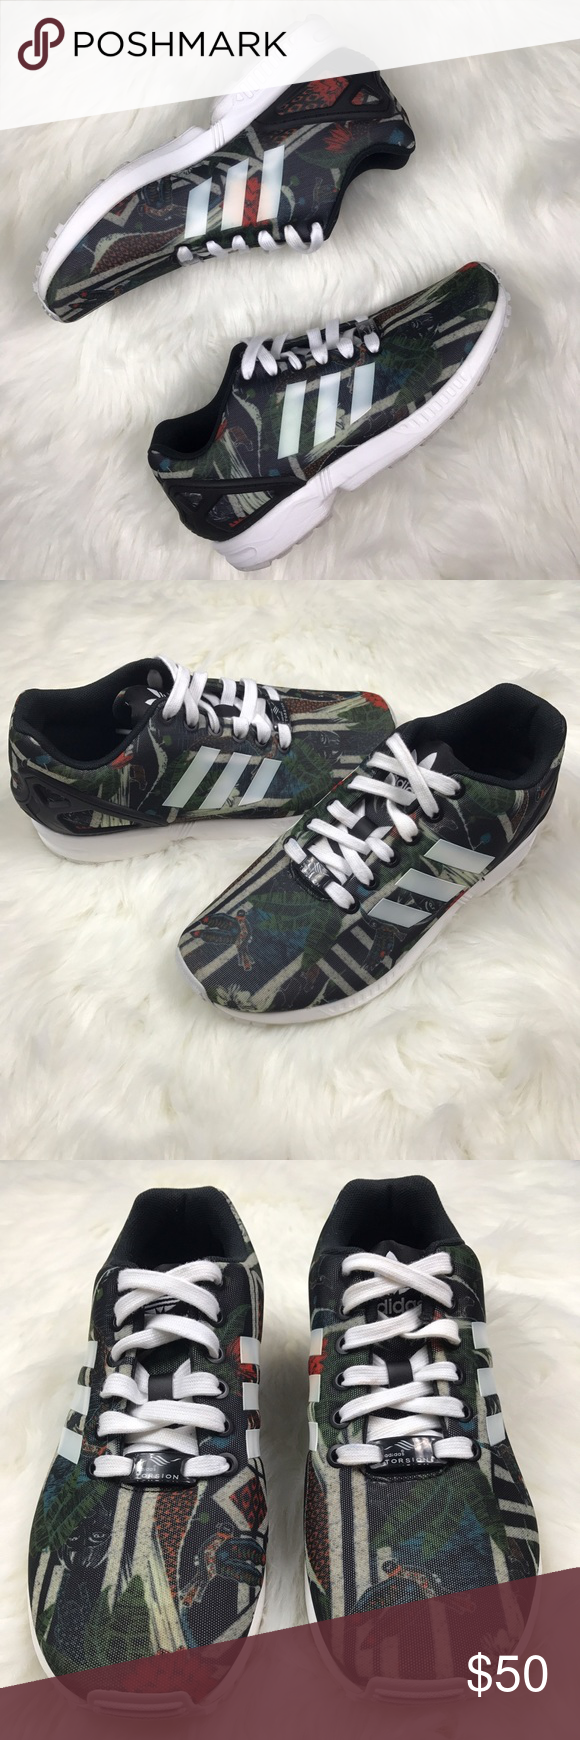 sale retailer f4c9c 5748c Adidas zx flux tropical rain forest Print Size 6 in women's ...